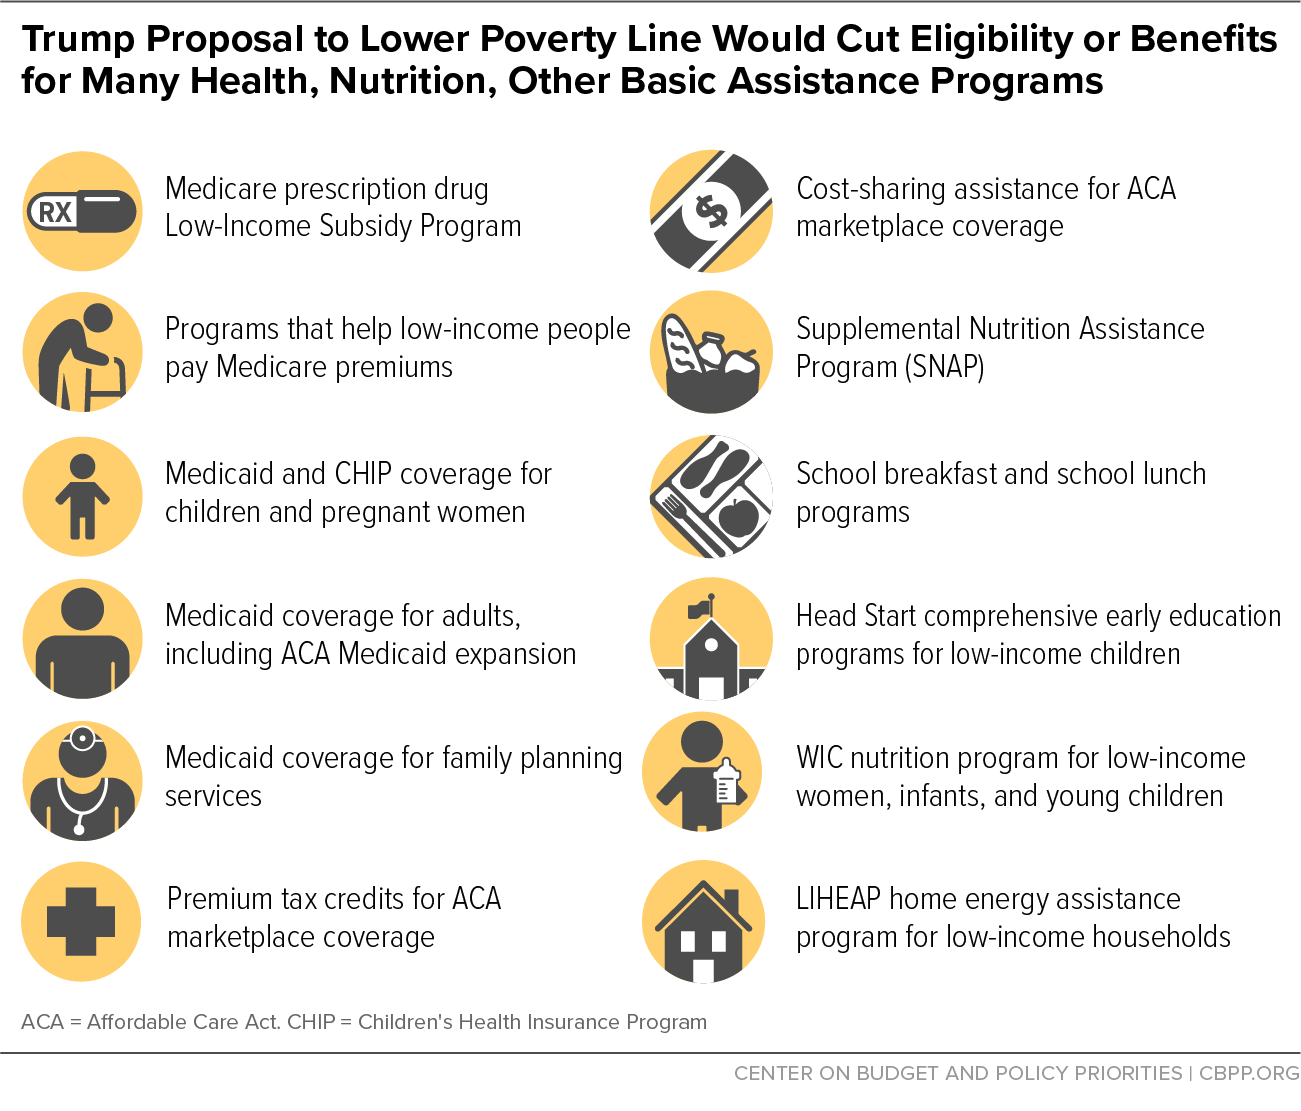 Trump Proposal to Lower Poverty Line Would Cut Eligibility or Benefits for Many Health, Nutrition, Other Basic Assistance Programs